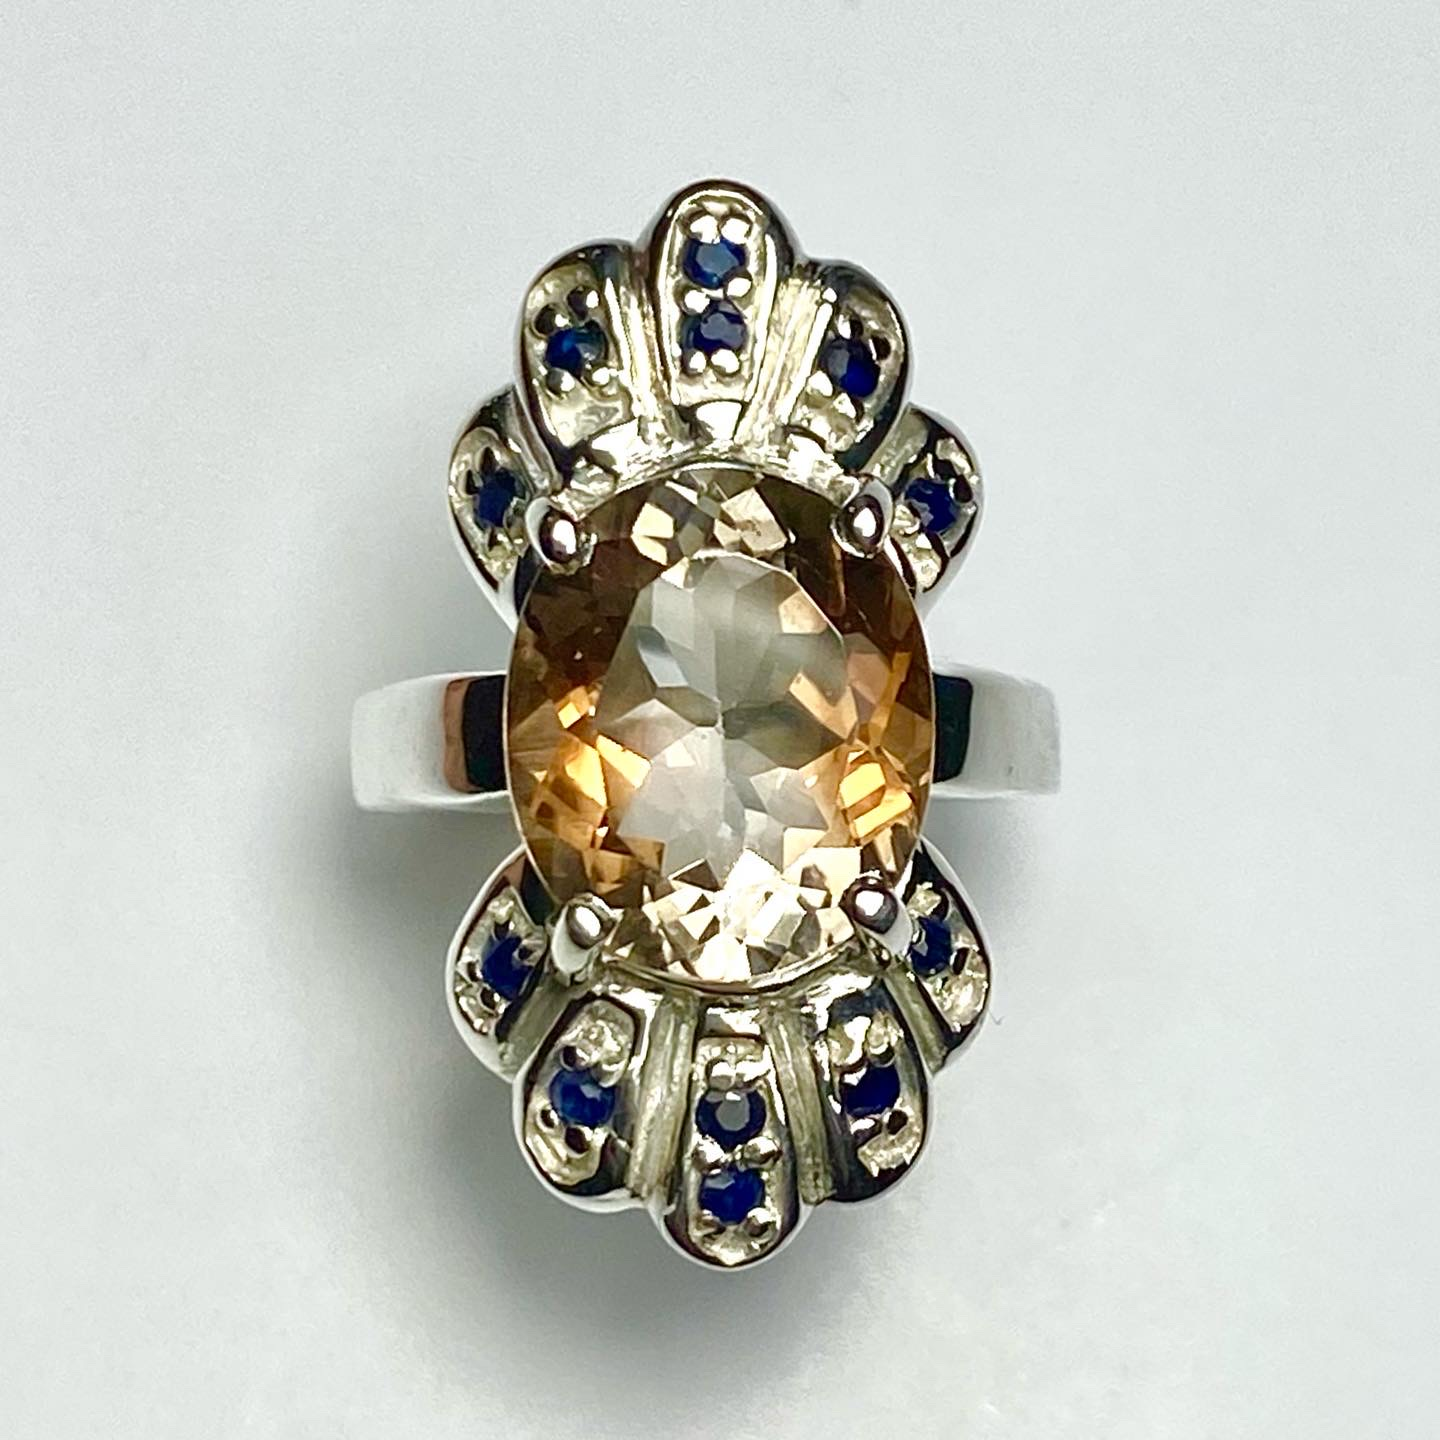 Imperial topaz & sapphire ring